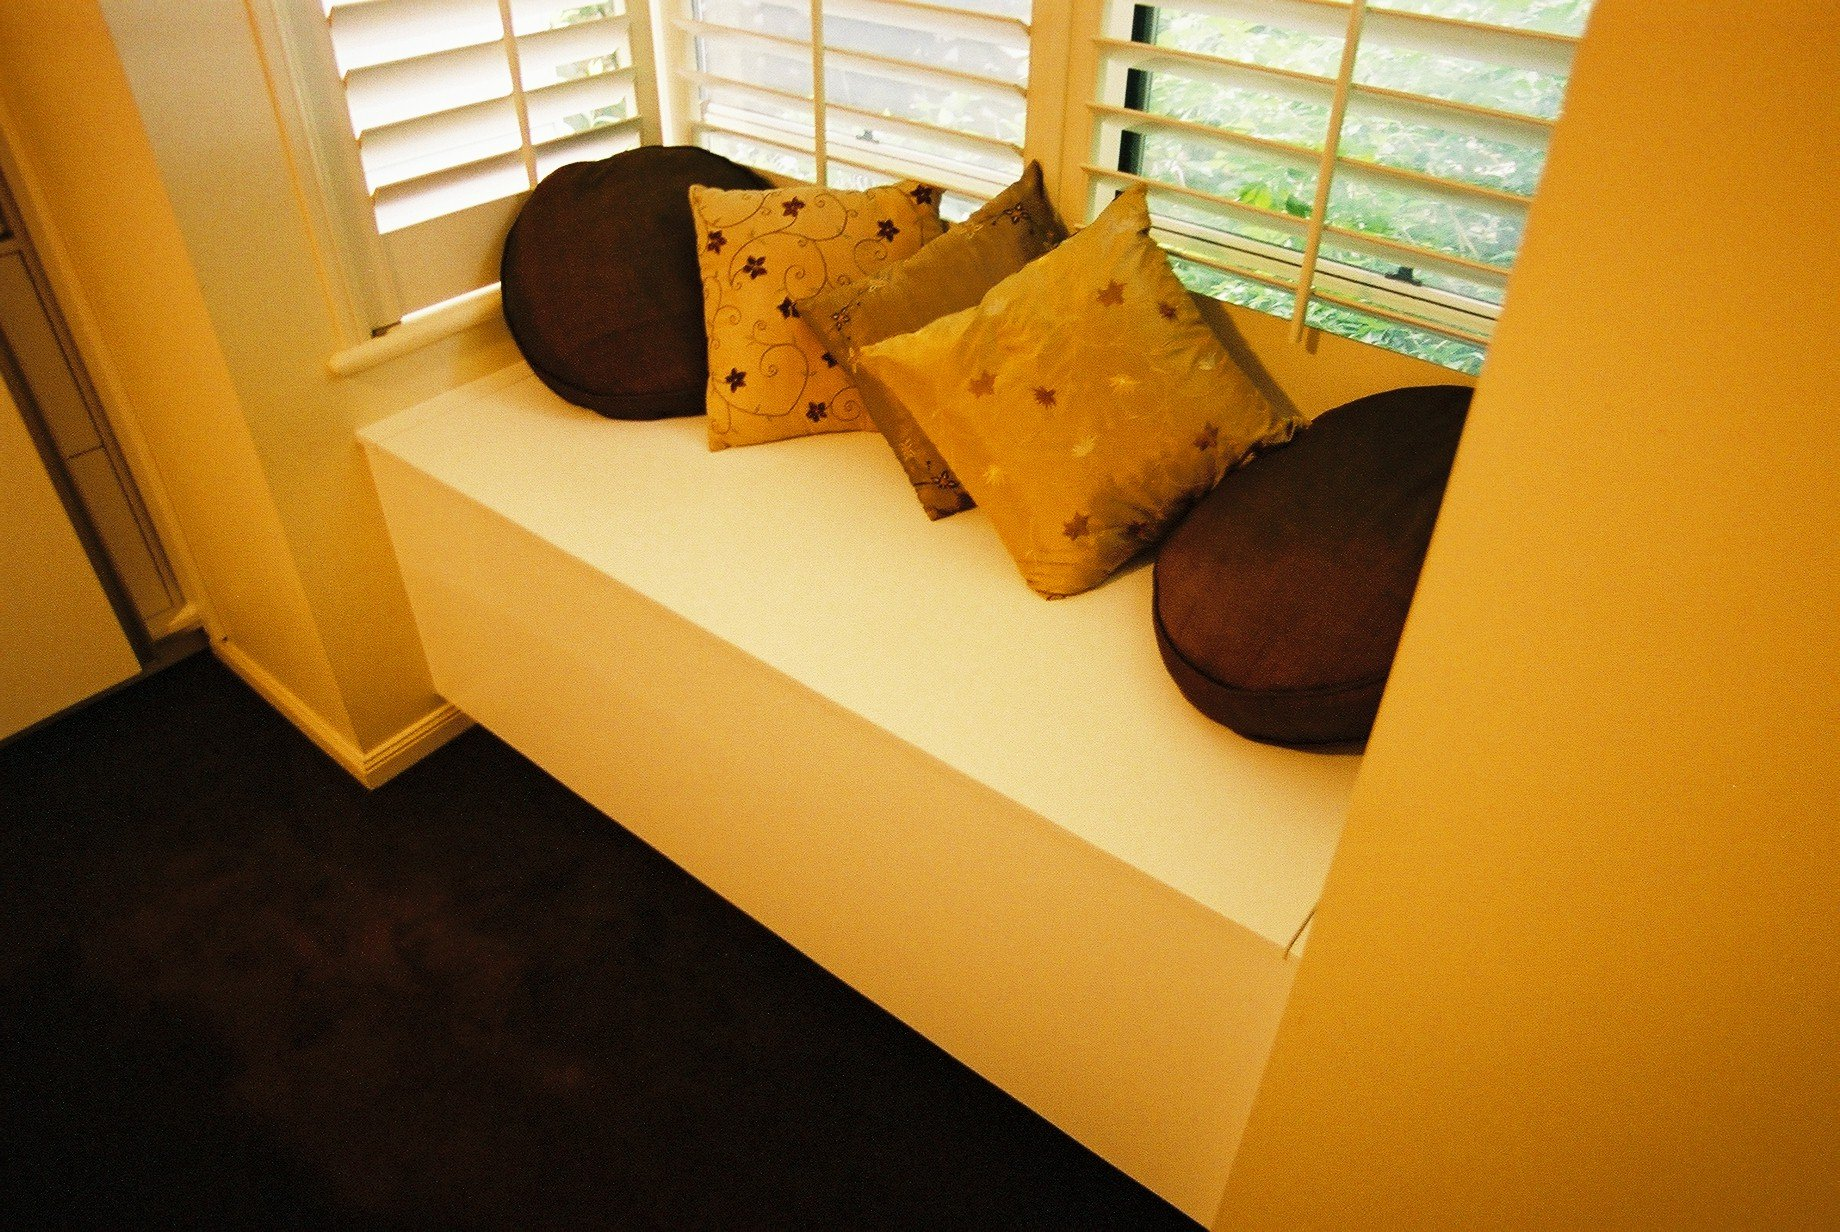 Window seating with storage